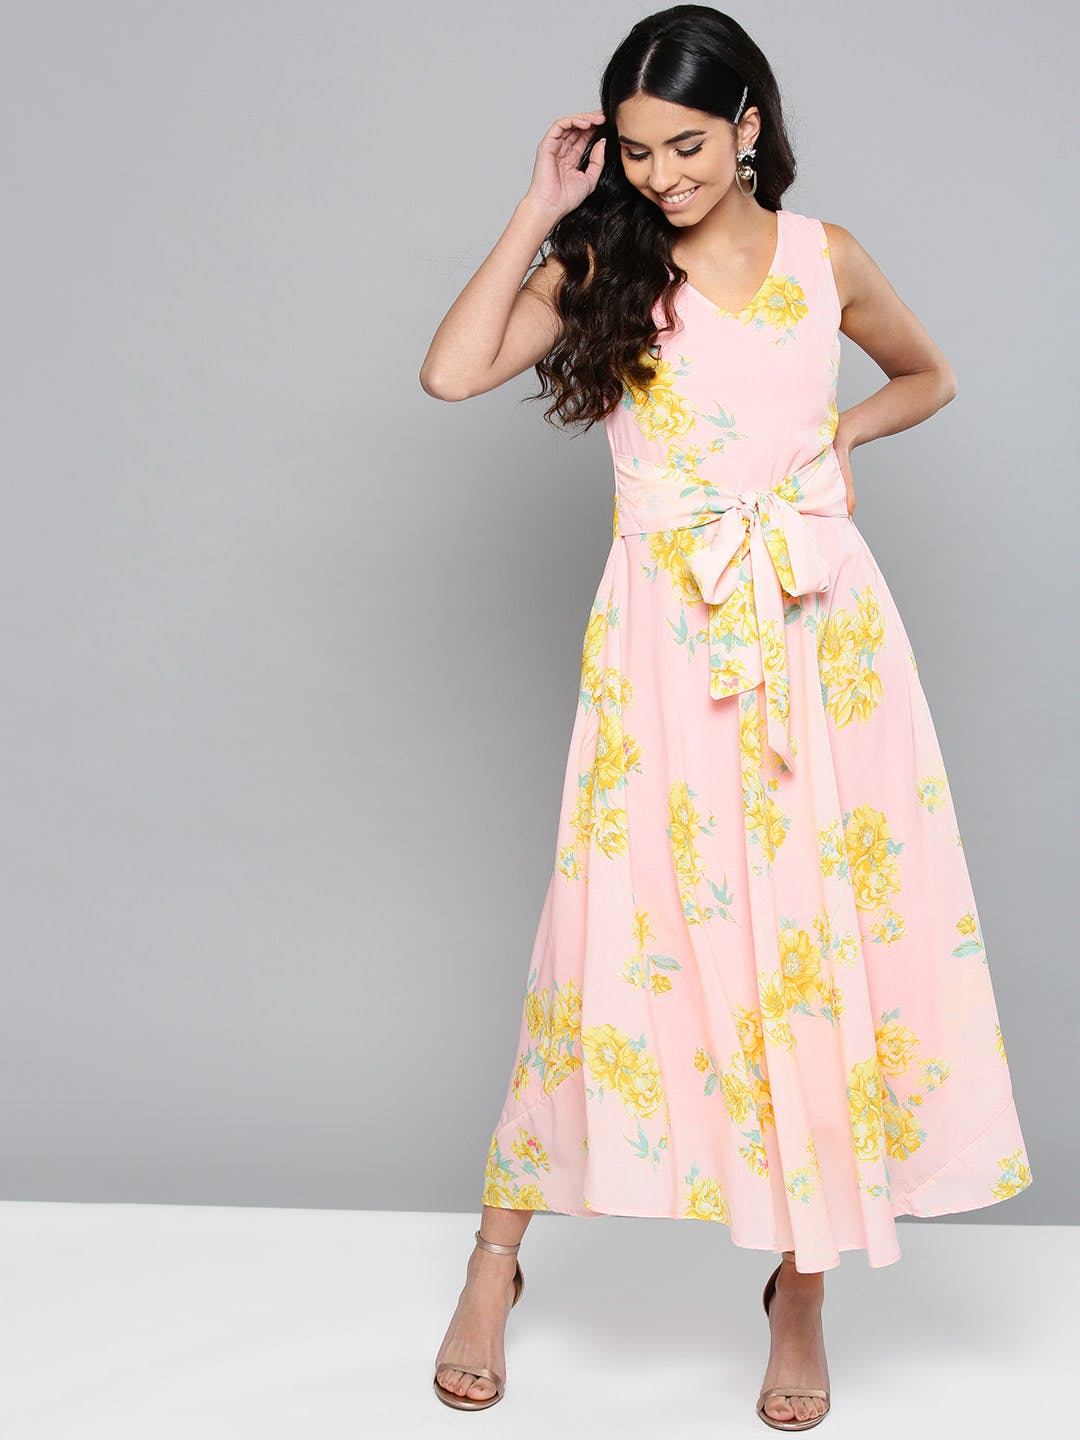 Clothing,Fashion model,Dress,White,Day dress,Yellow,Fashion,Neck,Pink,Waist